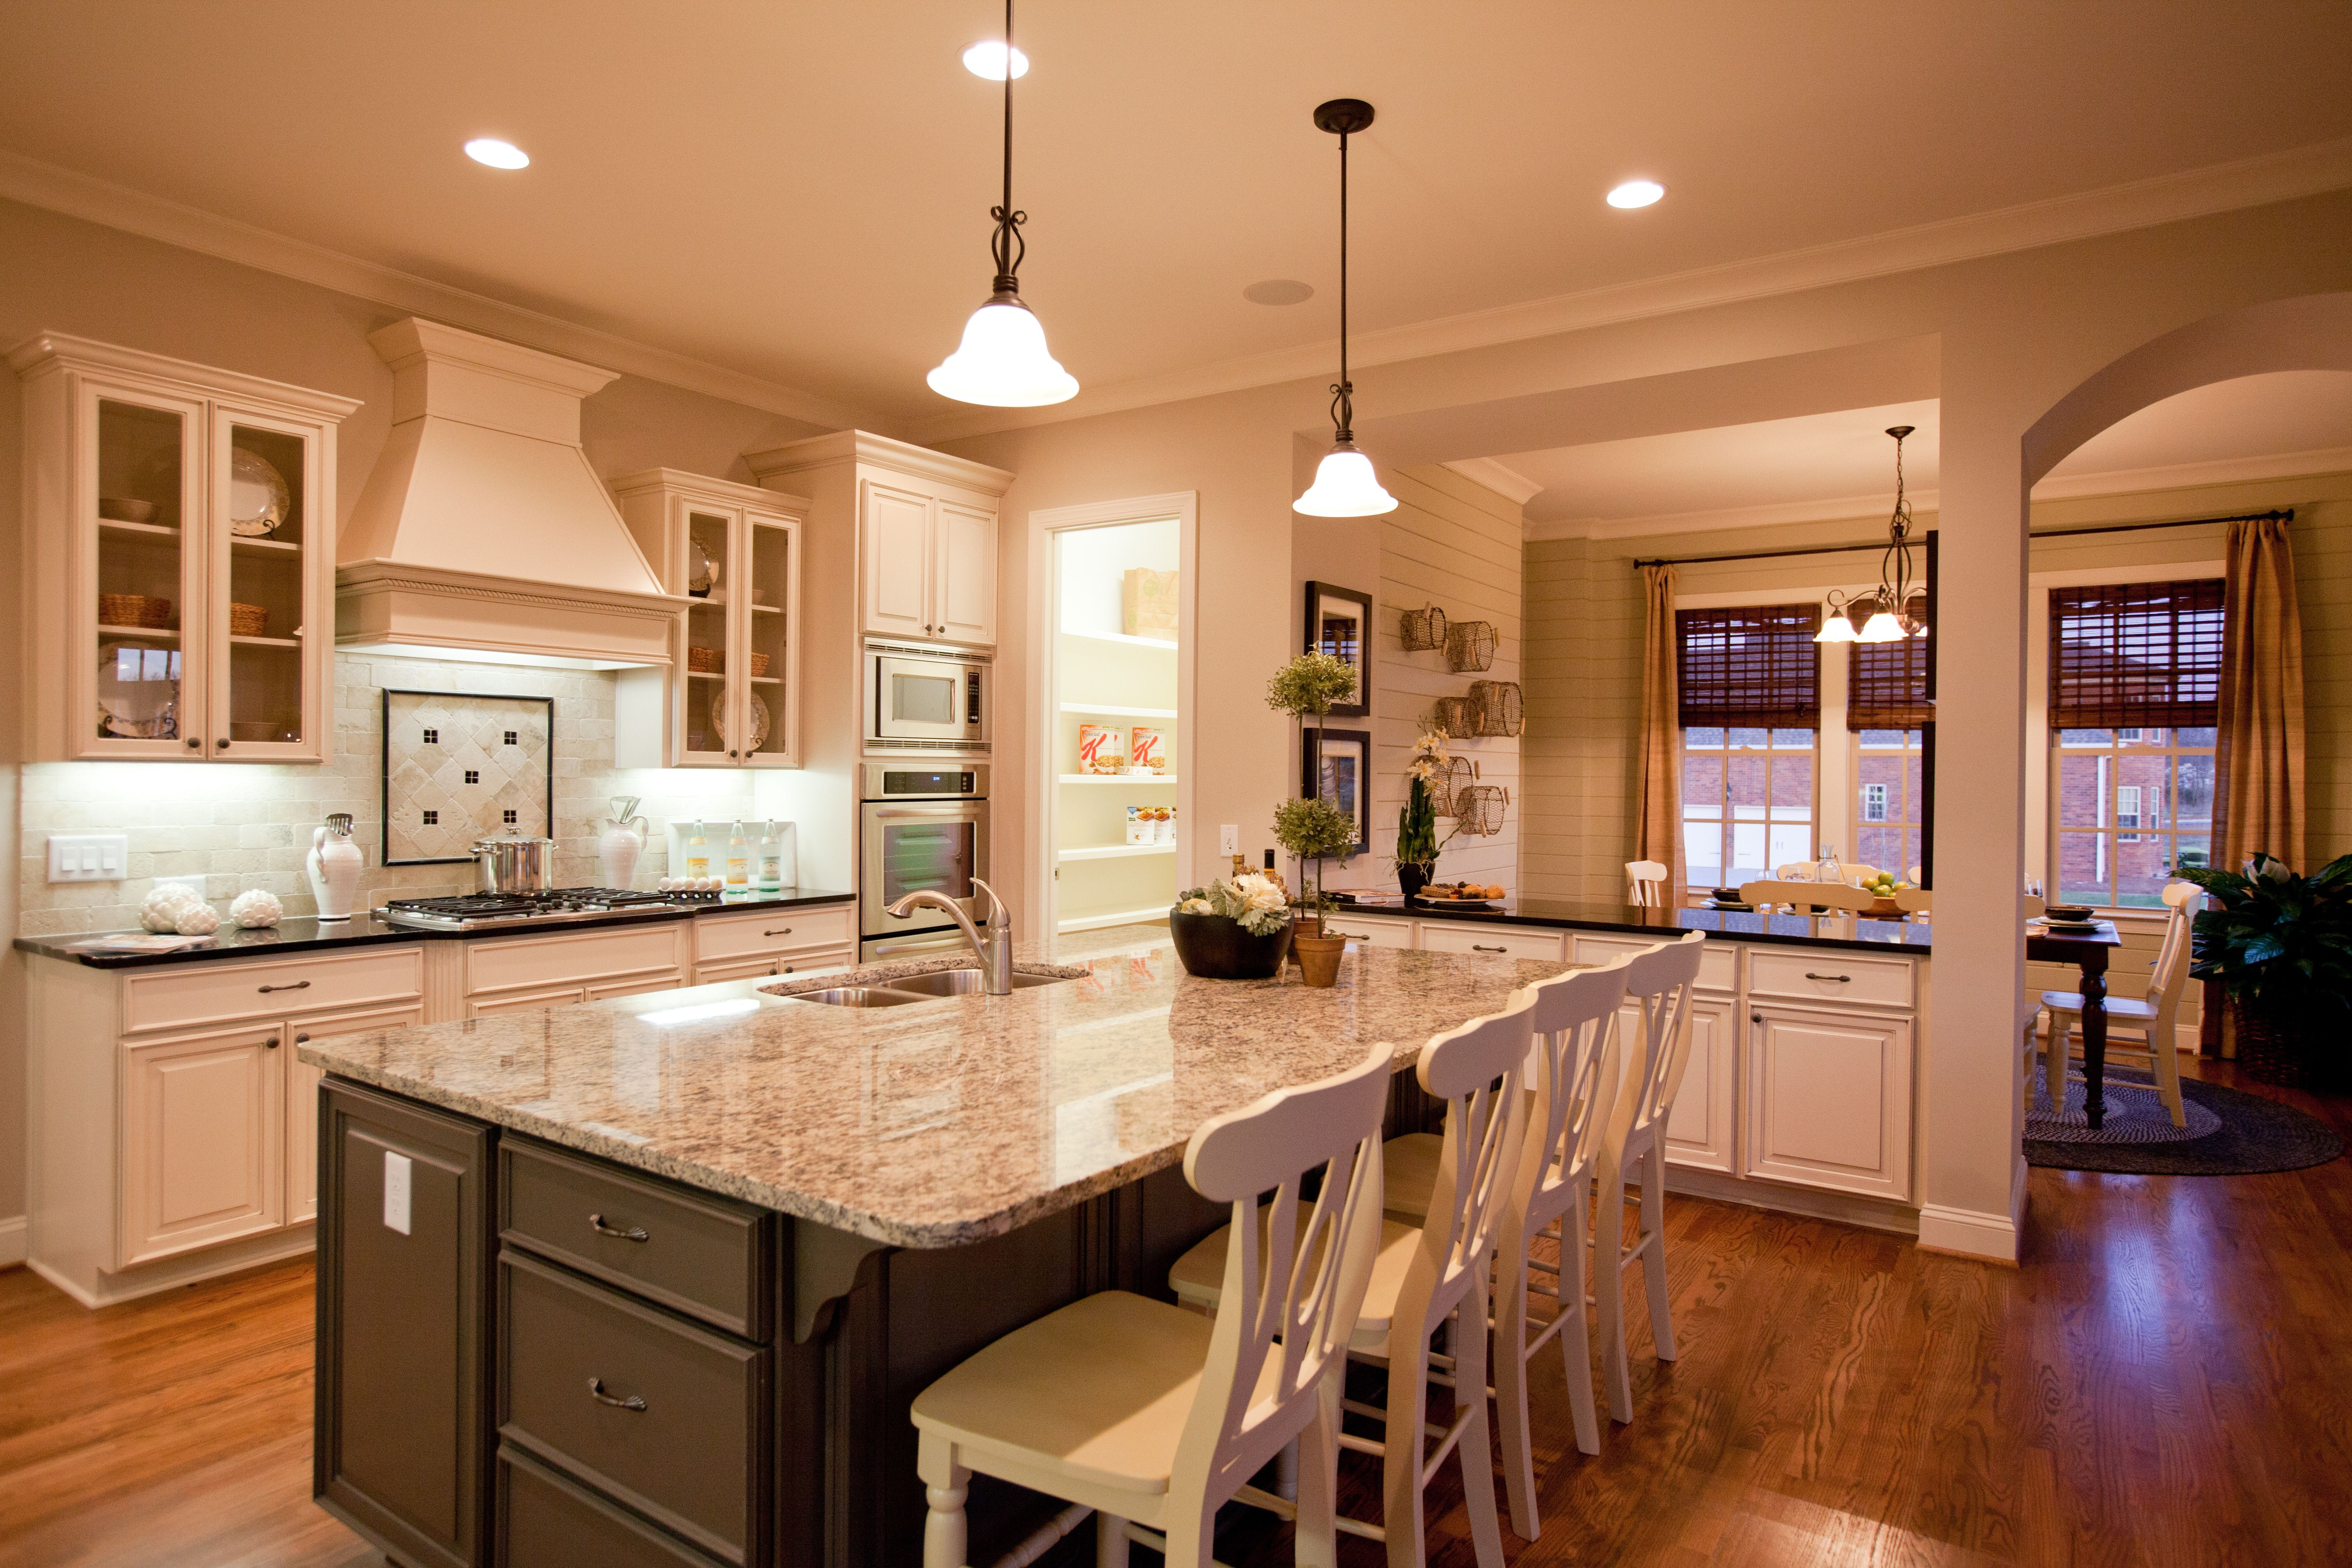 pictures for the kitchen kohler faucet parts model home google search